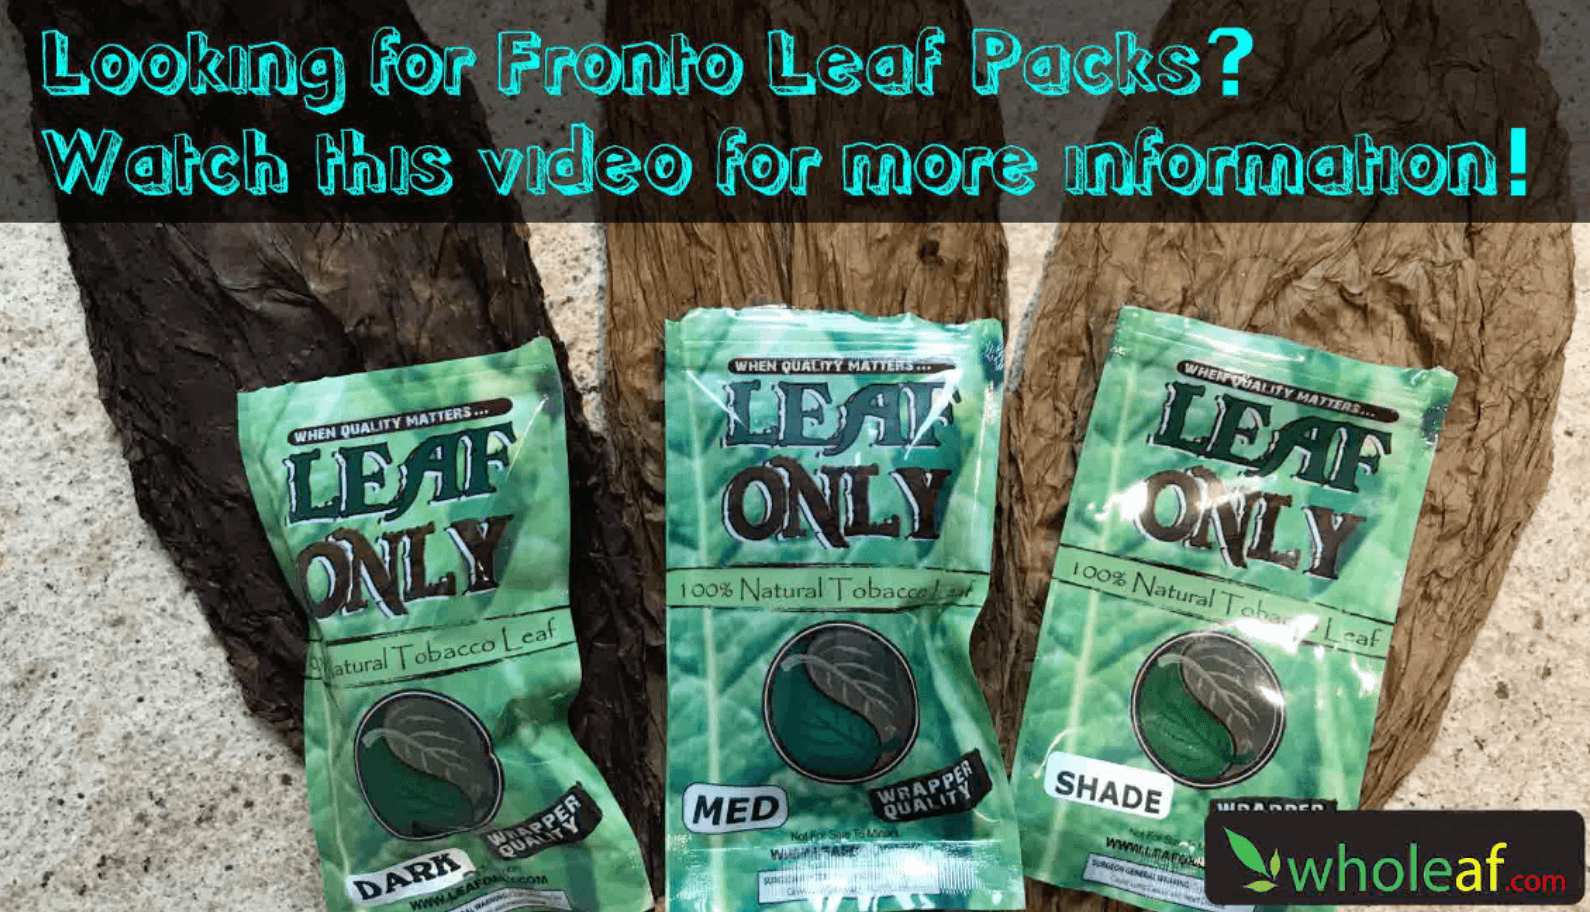 Fronto Leaf Packs For Your Store Shelves!